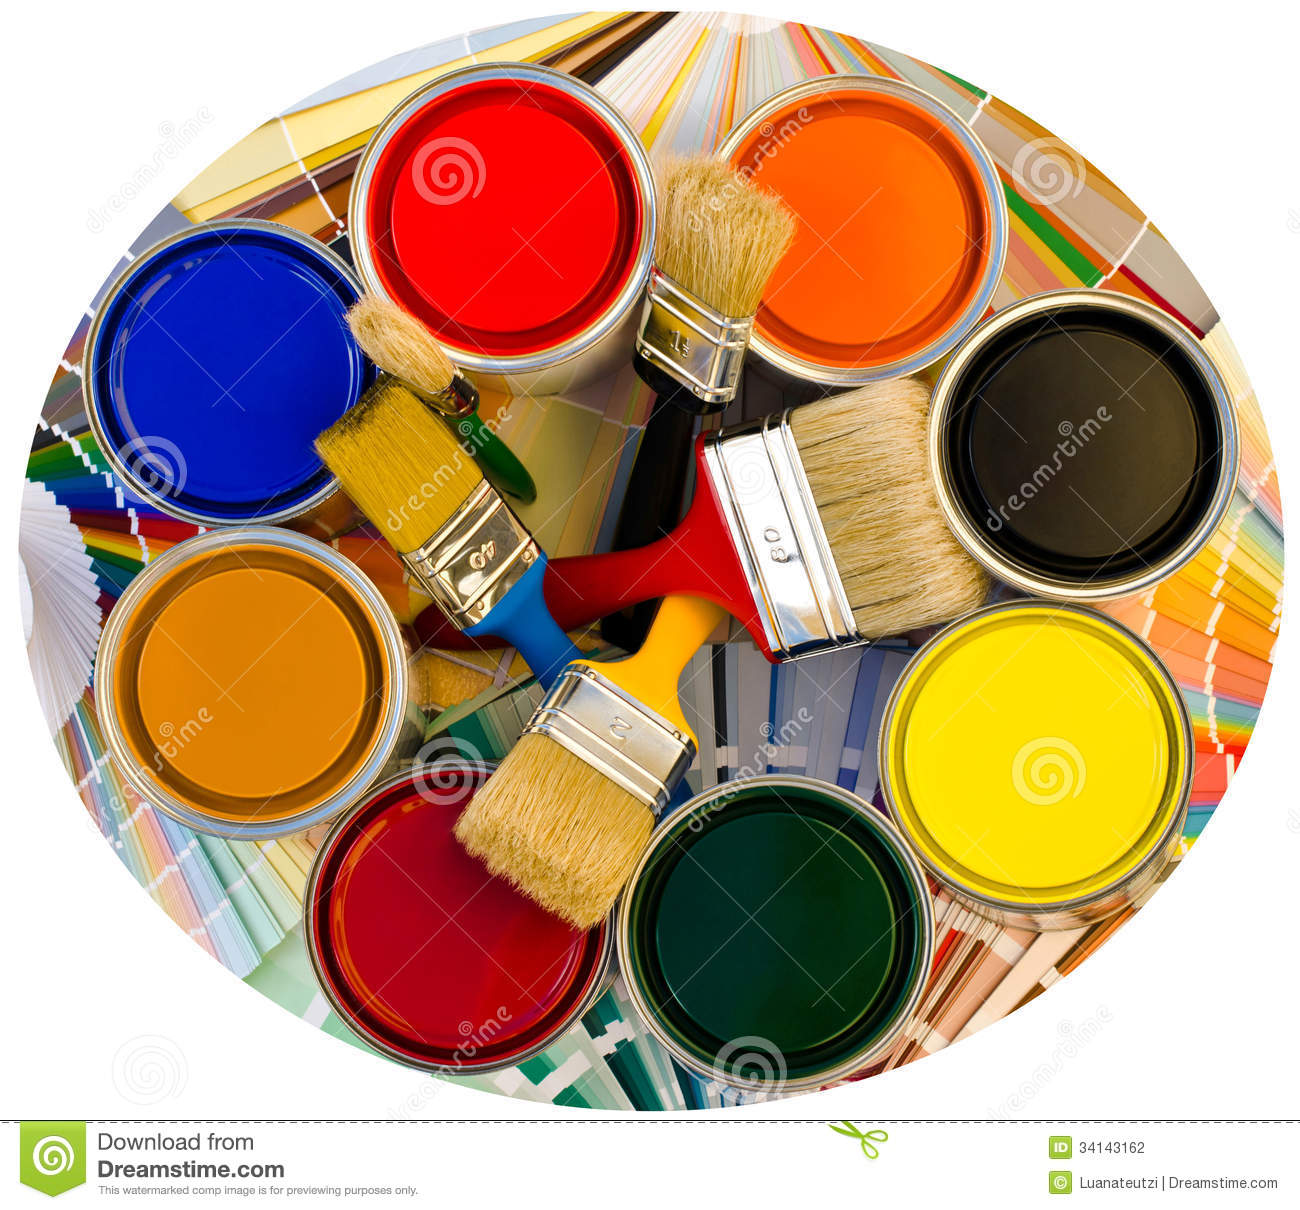 Different Colors Of Paint: Different Color Cans Of Paint And Brushes On Swatches